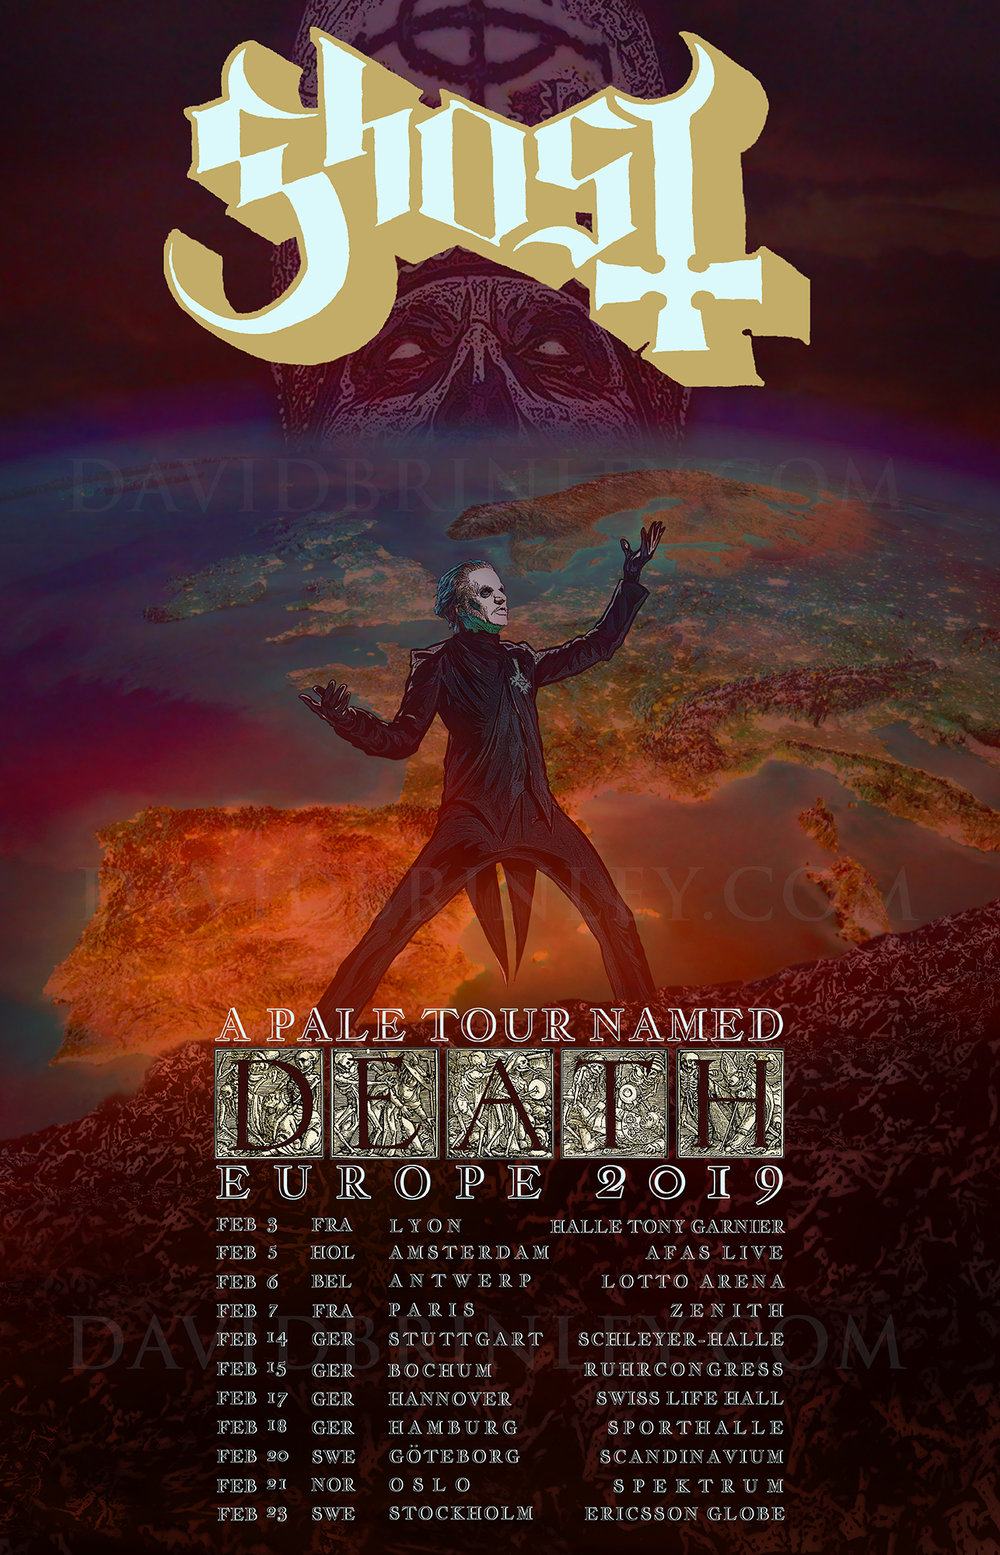 GHOST | A Pale Tour Named Death Official EU Tour poster    David M. Brinley | Illustrator Designer  Acrylic and Digital